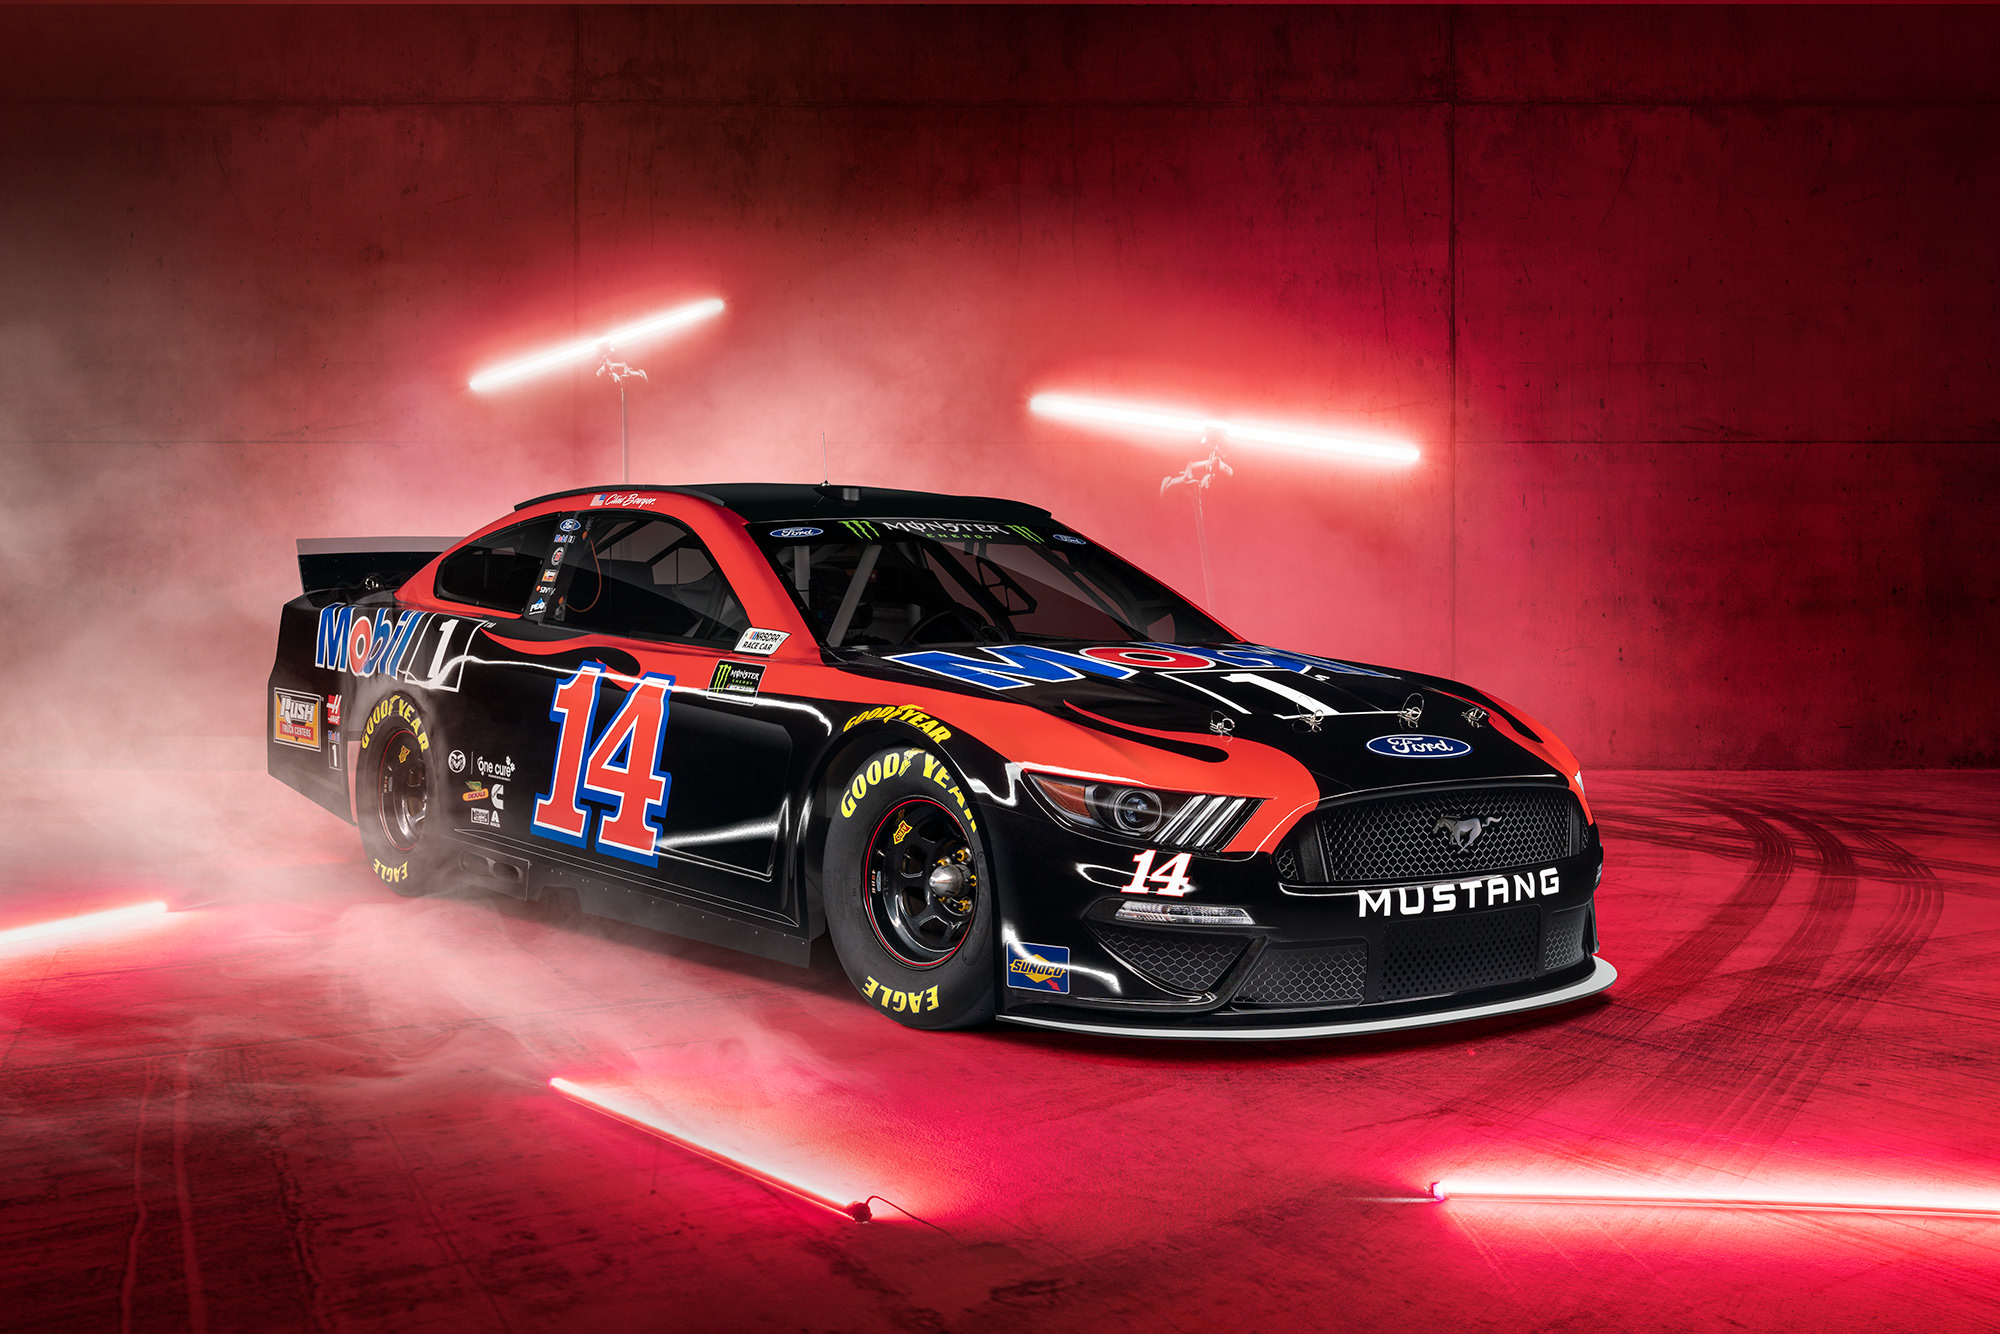 Clint Bowyer Mobil 1 NASCAR commercial photography